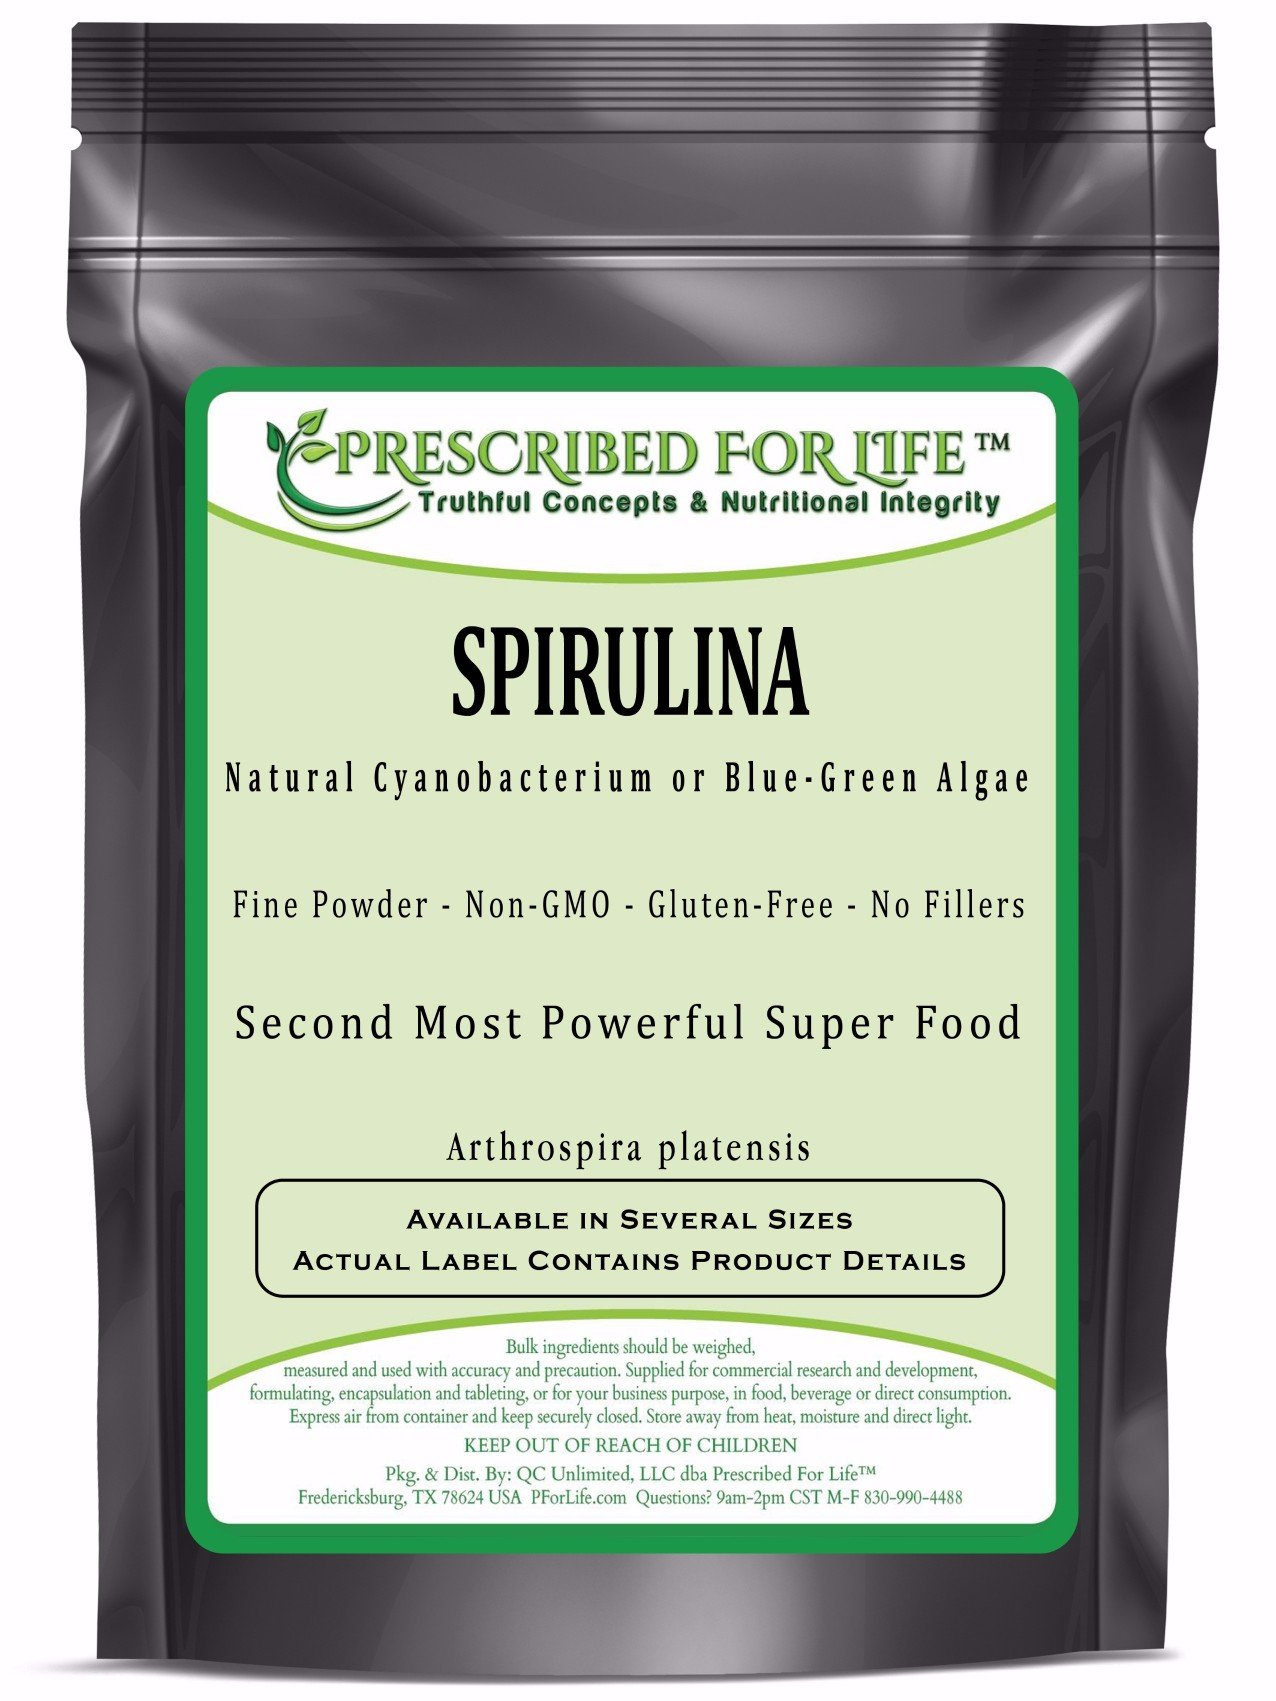 Spirulina - Natural Cyanobacterium or Blue-Green Algae Powder - Arthrospira platensis, 2 kg